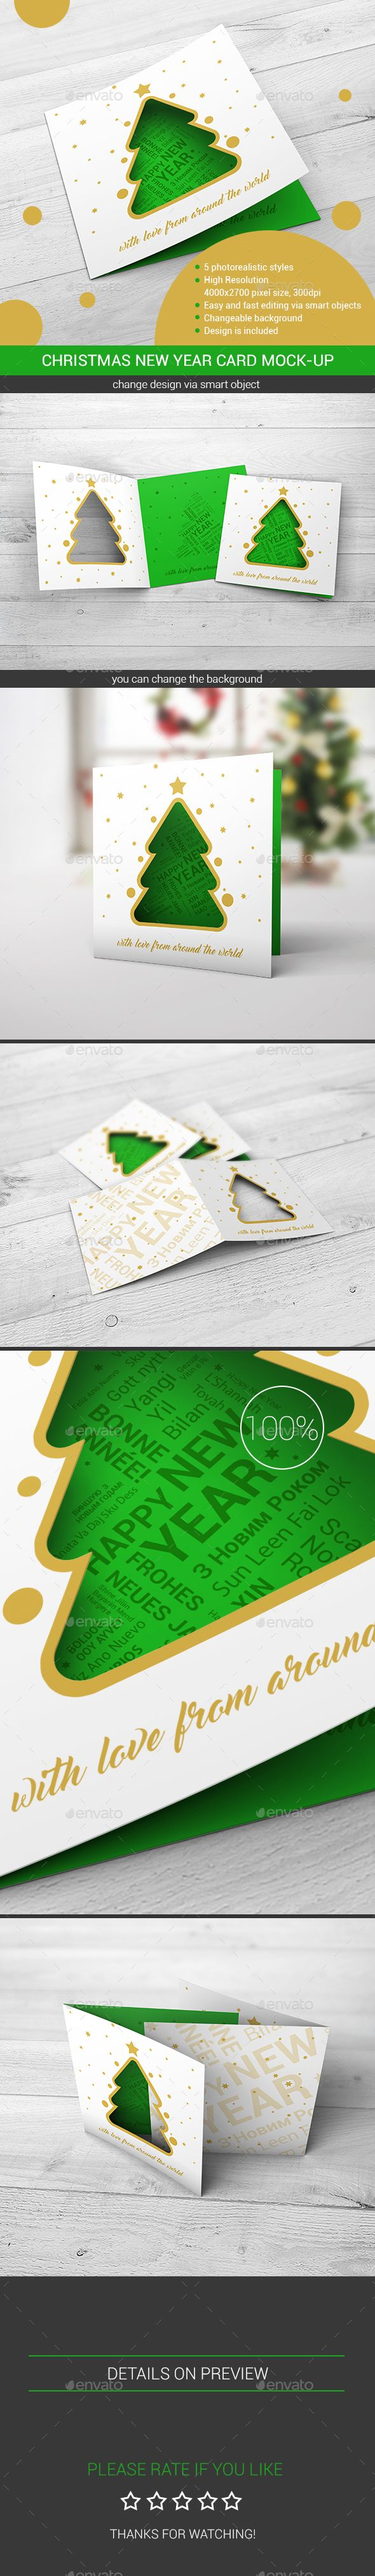 Print Mockup - Christmas New Year Card Mock-Up - Print Mockup by StreetD.  #Graphic #BlackFriday #Logo #UIUX #UserInterface #TuesdayMotivation #HappyTuesday #Vectors #PresentationTemplate#TuesdayFeeling #TuesdayThoughts #WebElements  #TuesdayWisdom #CyberMonday #DesignTemplate